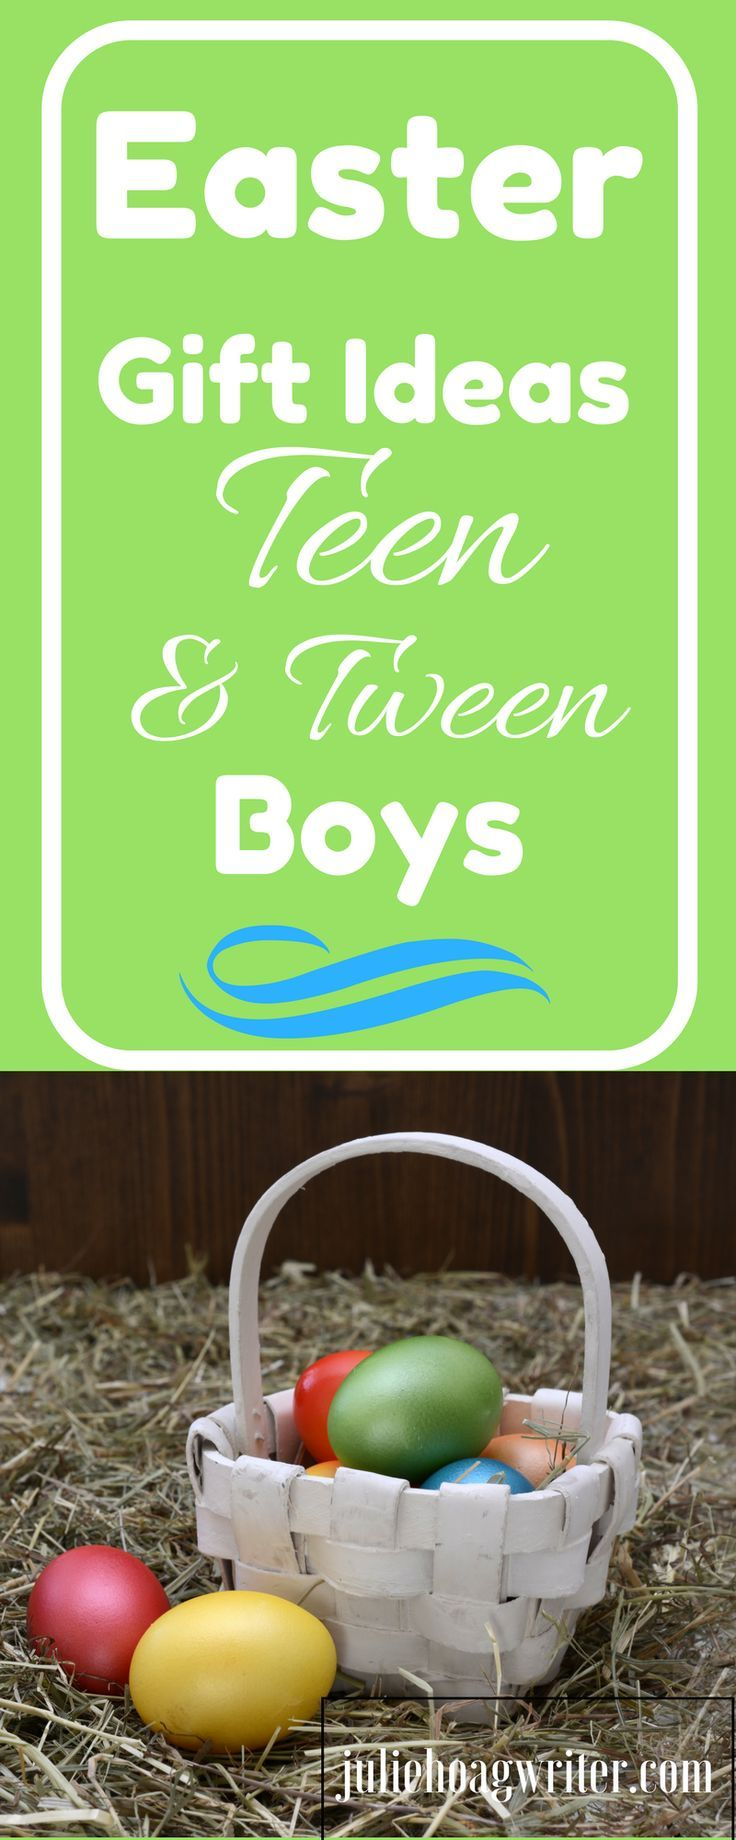 Easter gift ideas for teen and tween boys face light tween and easter gift ideas for teen and tween boys negle Images